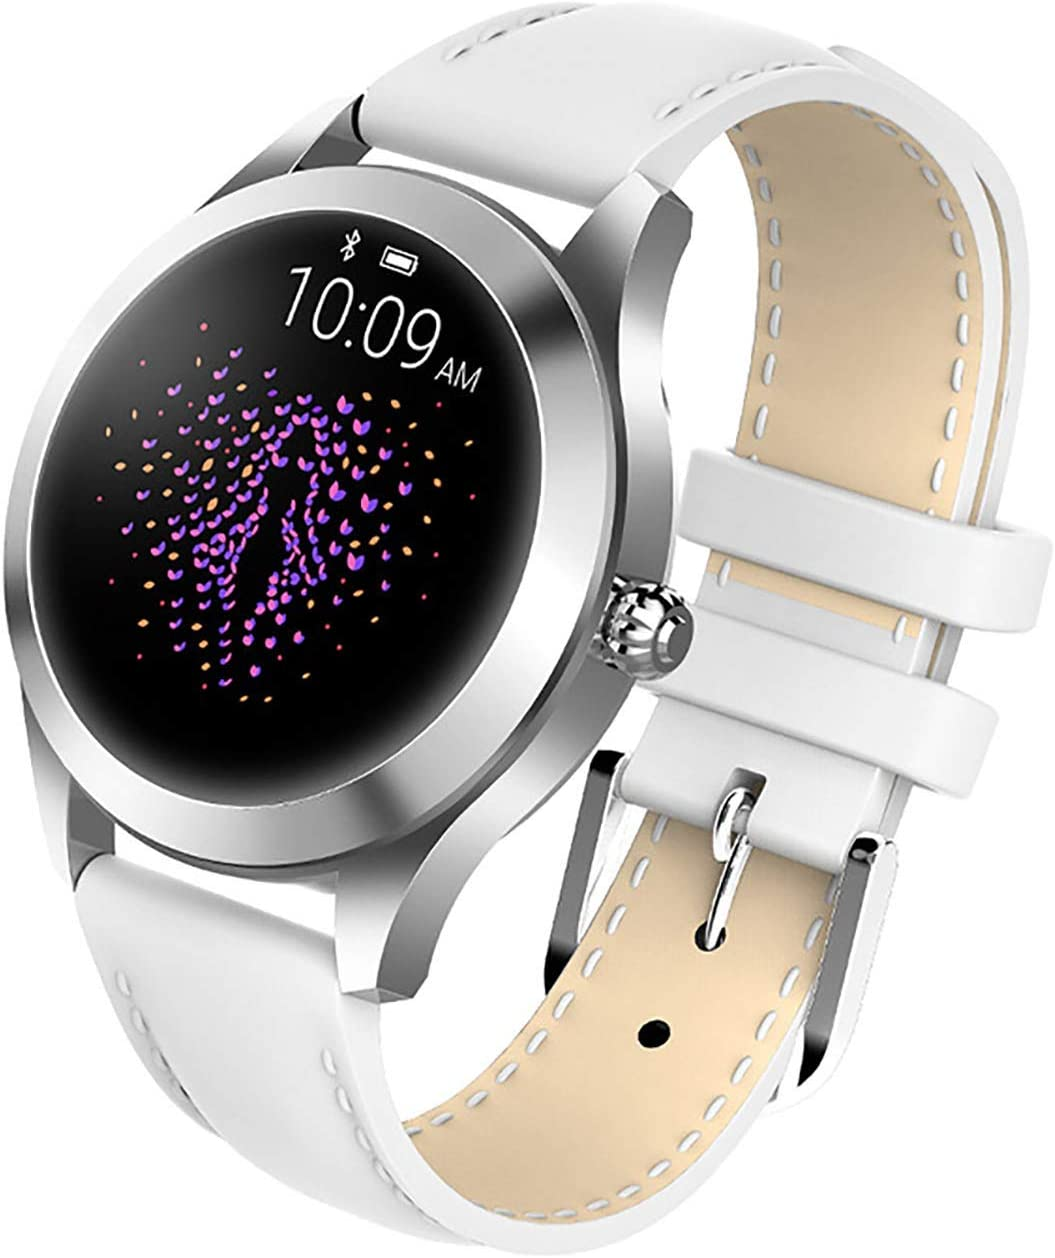 Max 54% OFF N \ A Smart Watch Bluetooth Tracking Heart Fitness Bracelet Japan's largest assortment Ra